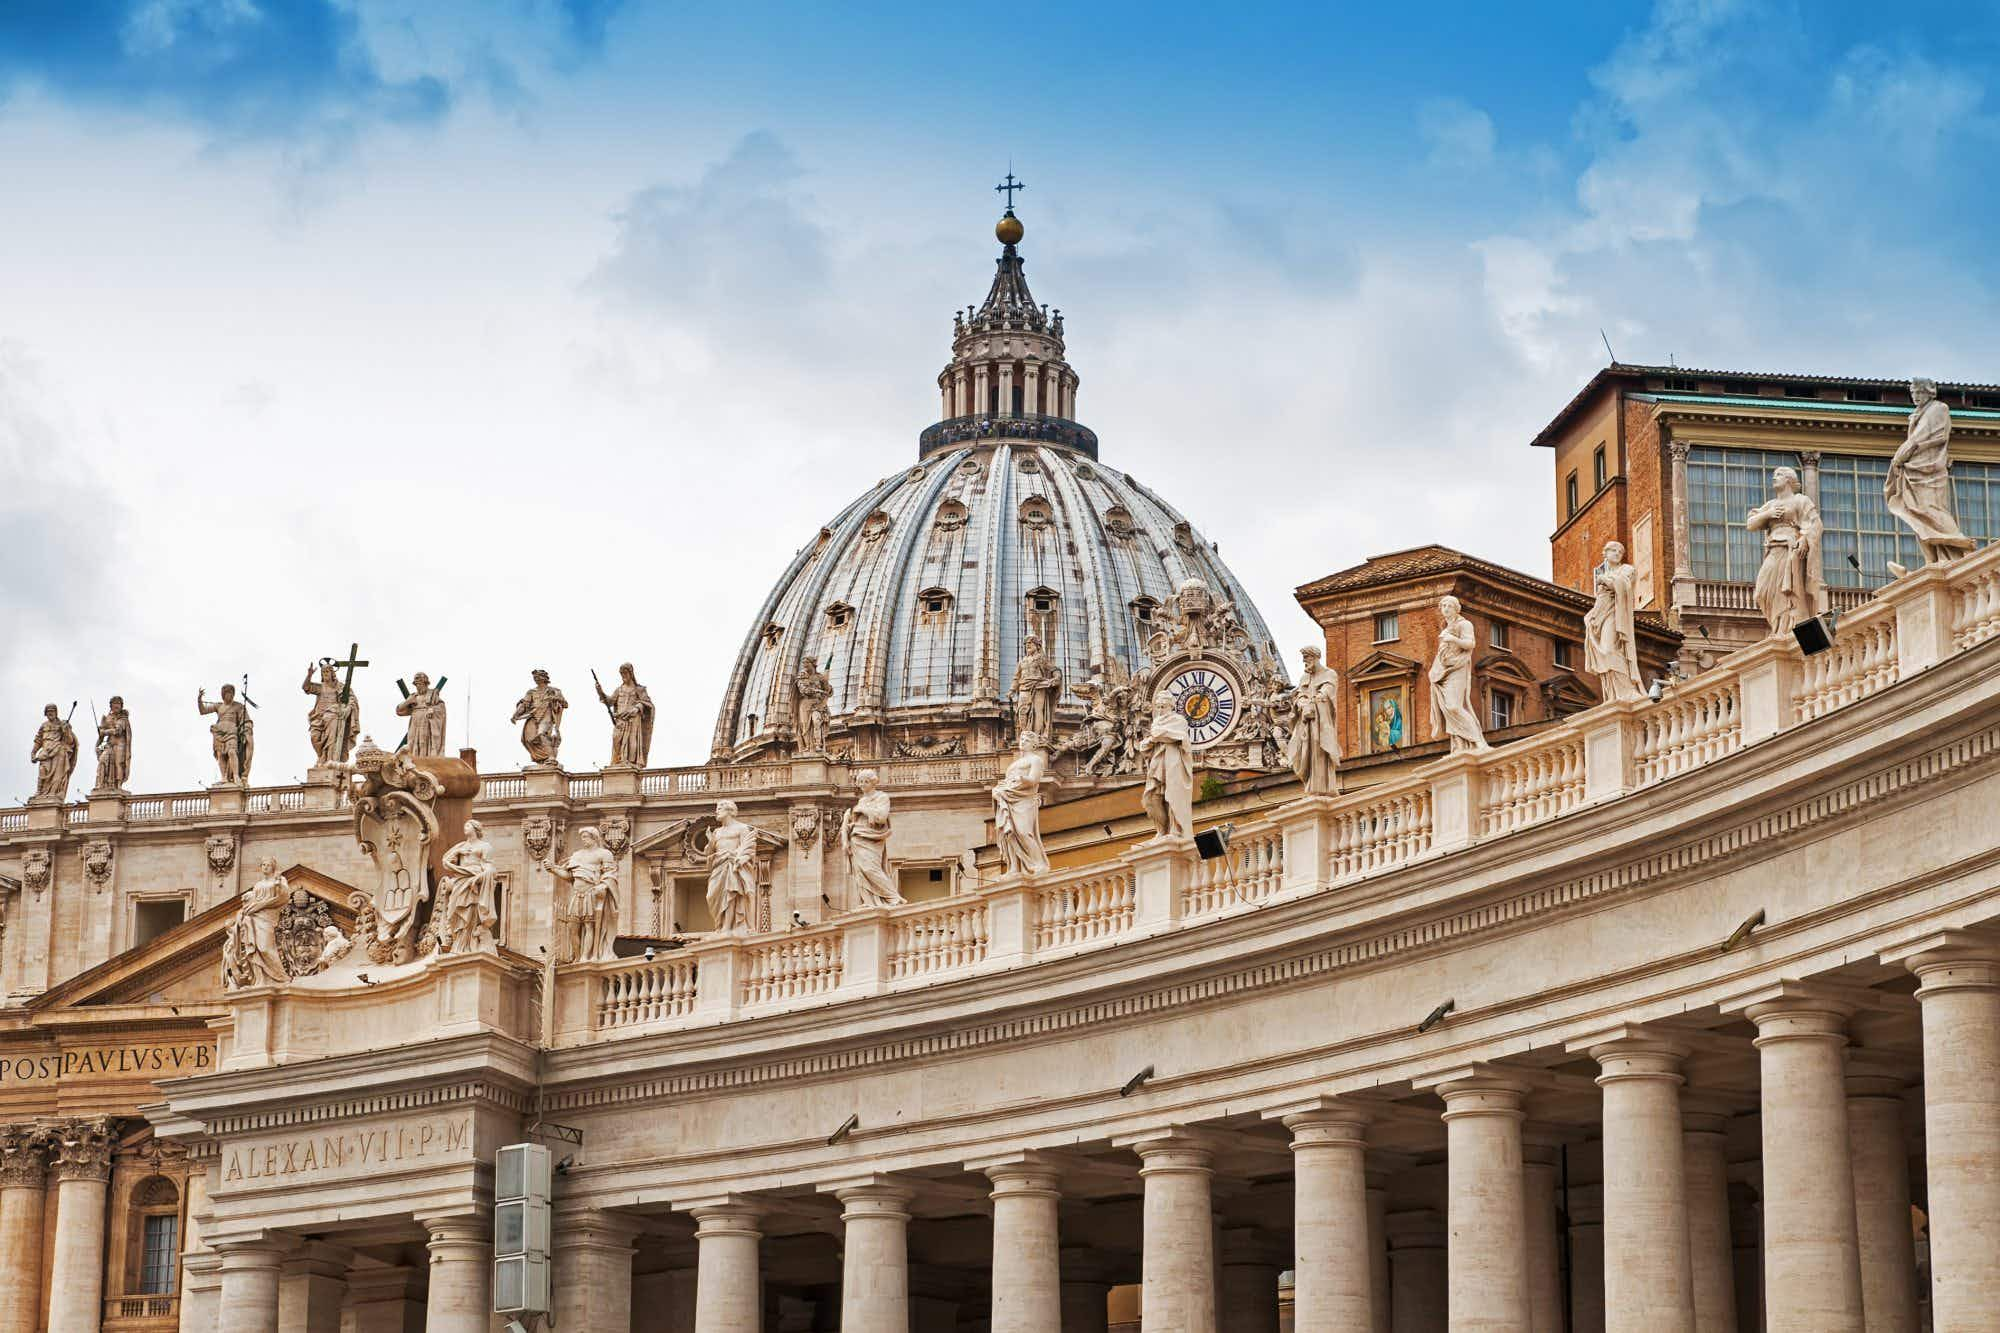 Second entrance to Vatican Museums in the works